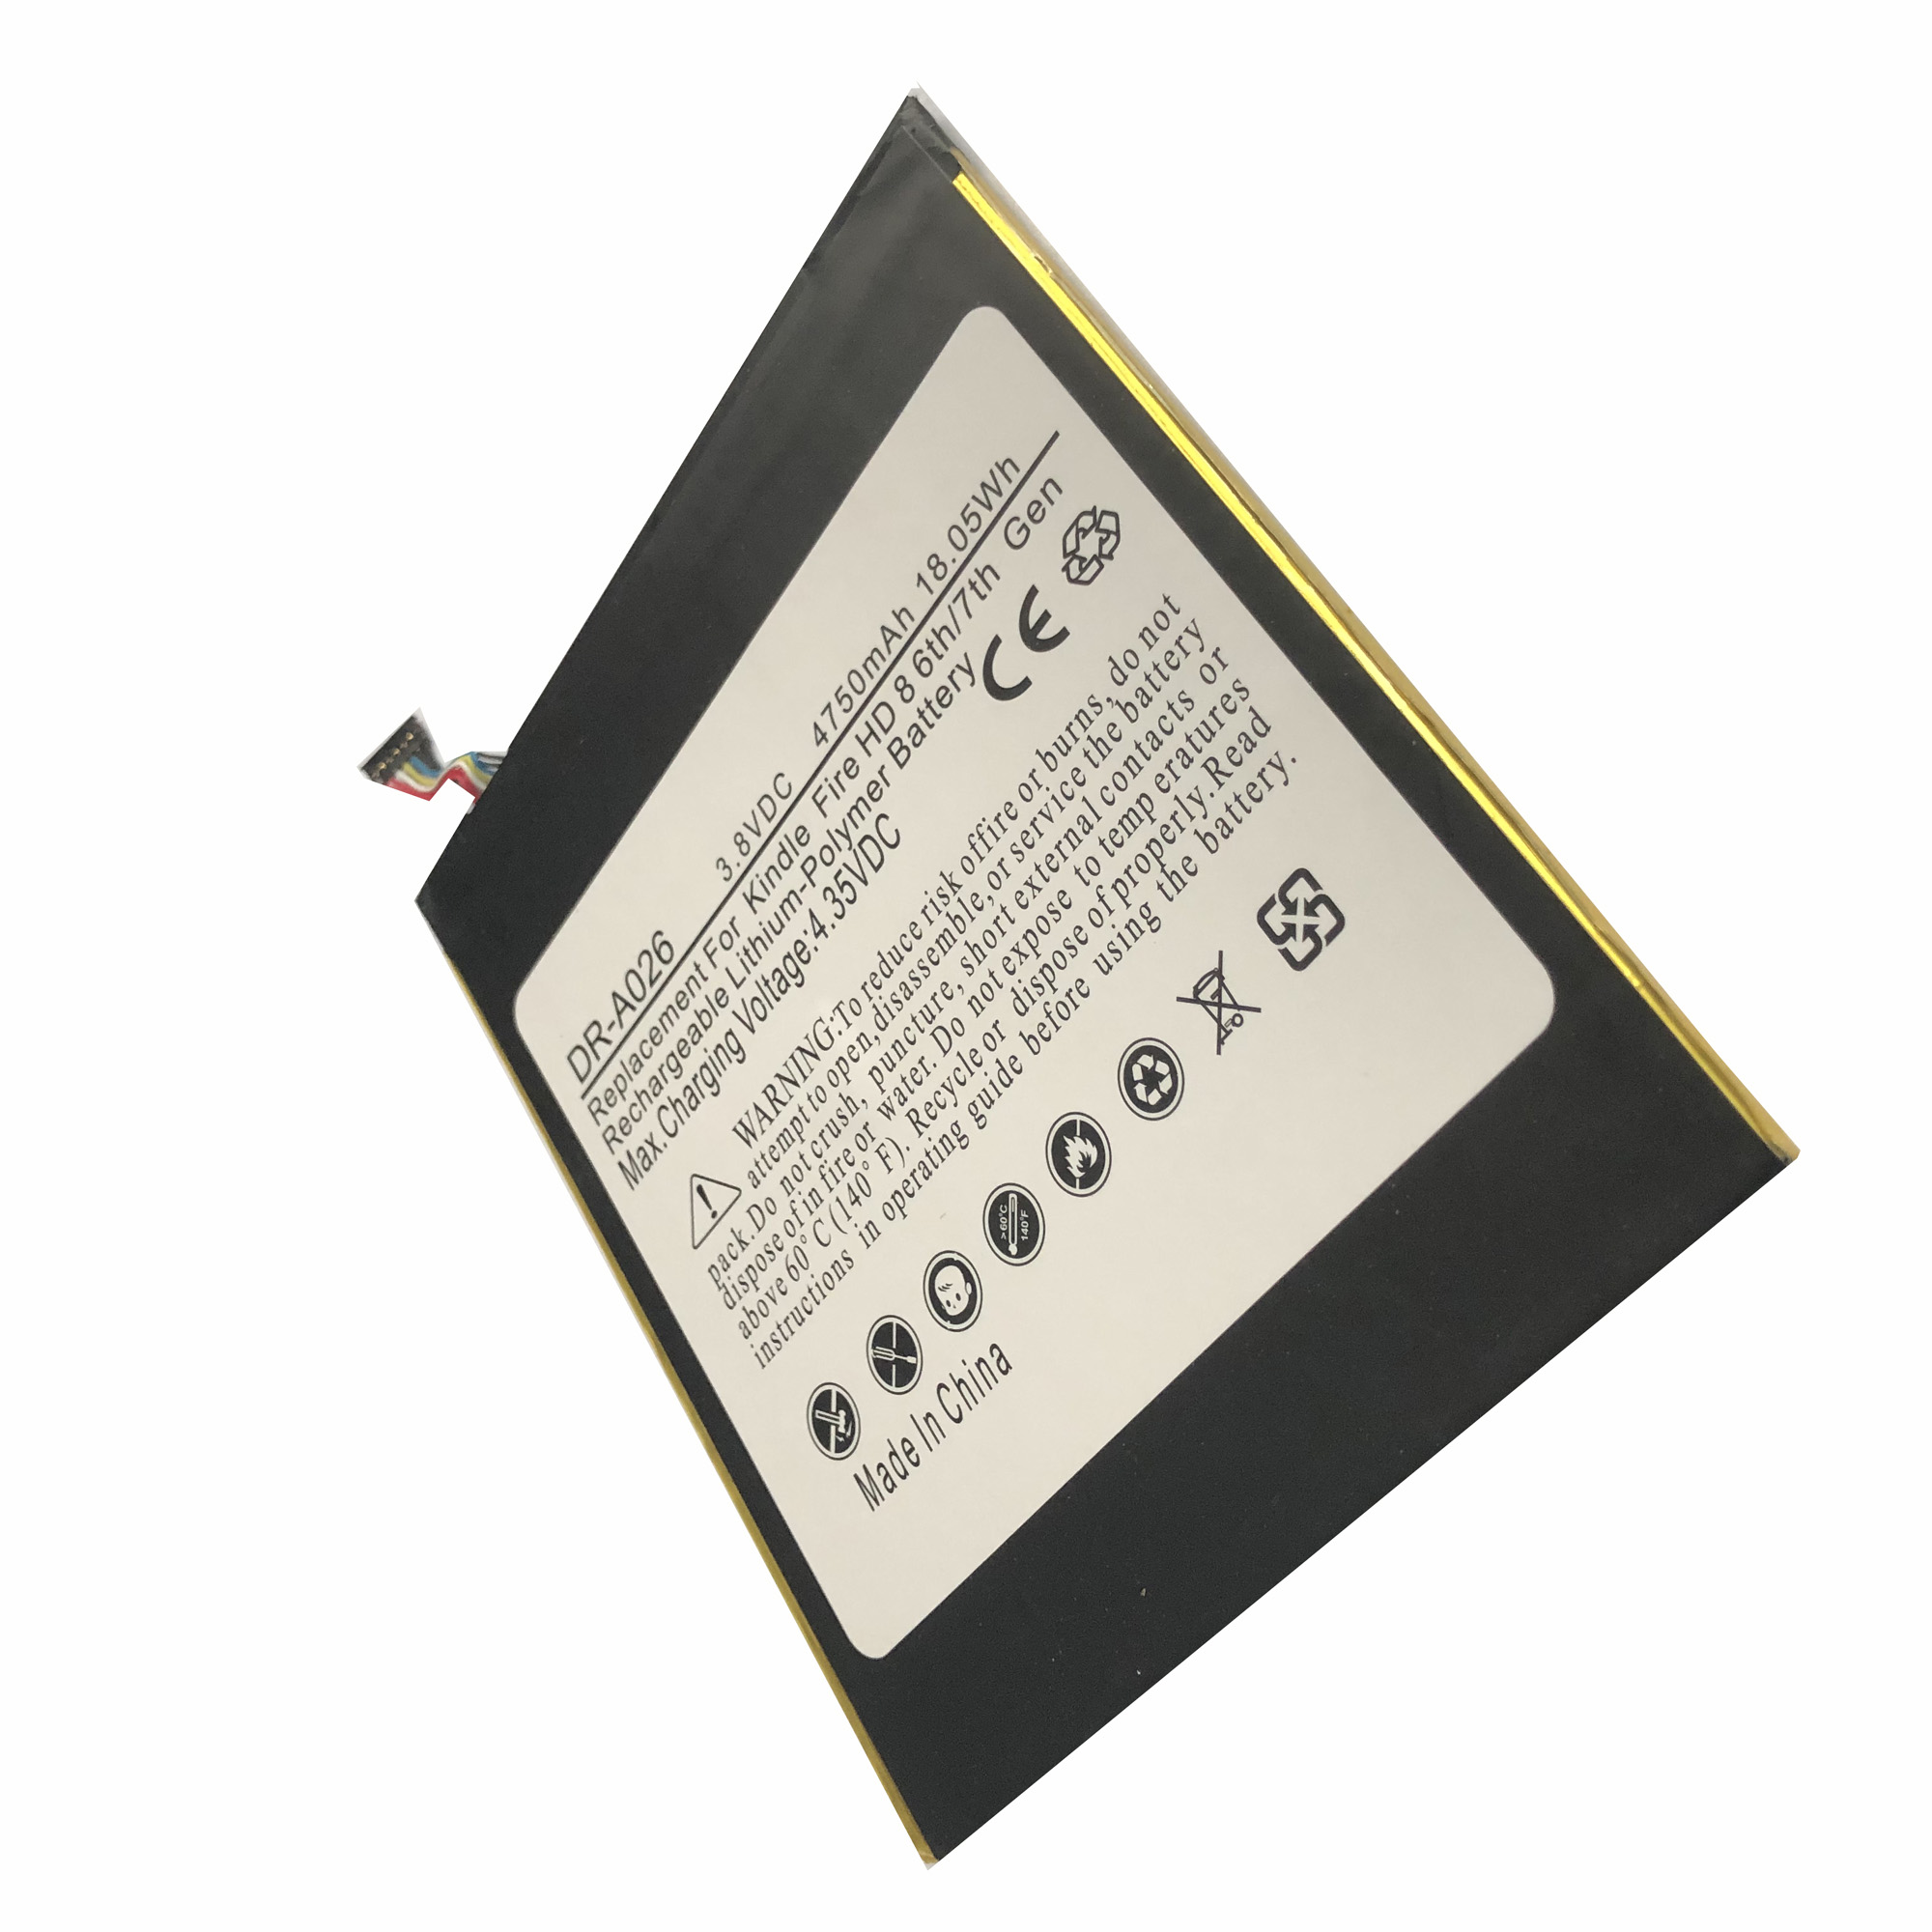 Sunlu — Tablette Li polymère,Batterie Mc 40a40b40,Pour Amazon Kindle Kindle  Fire Hd,40 Pouces,40e Génération,Pr40dc   Buy Batterie Tablette,Batterie ...